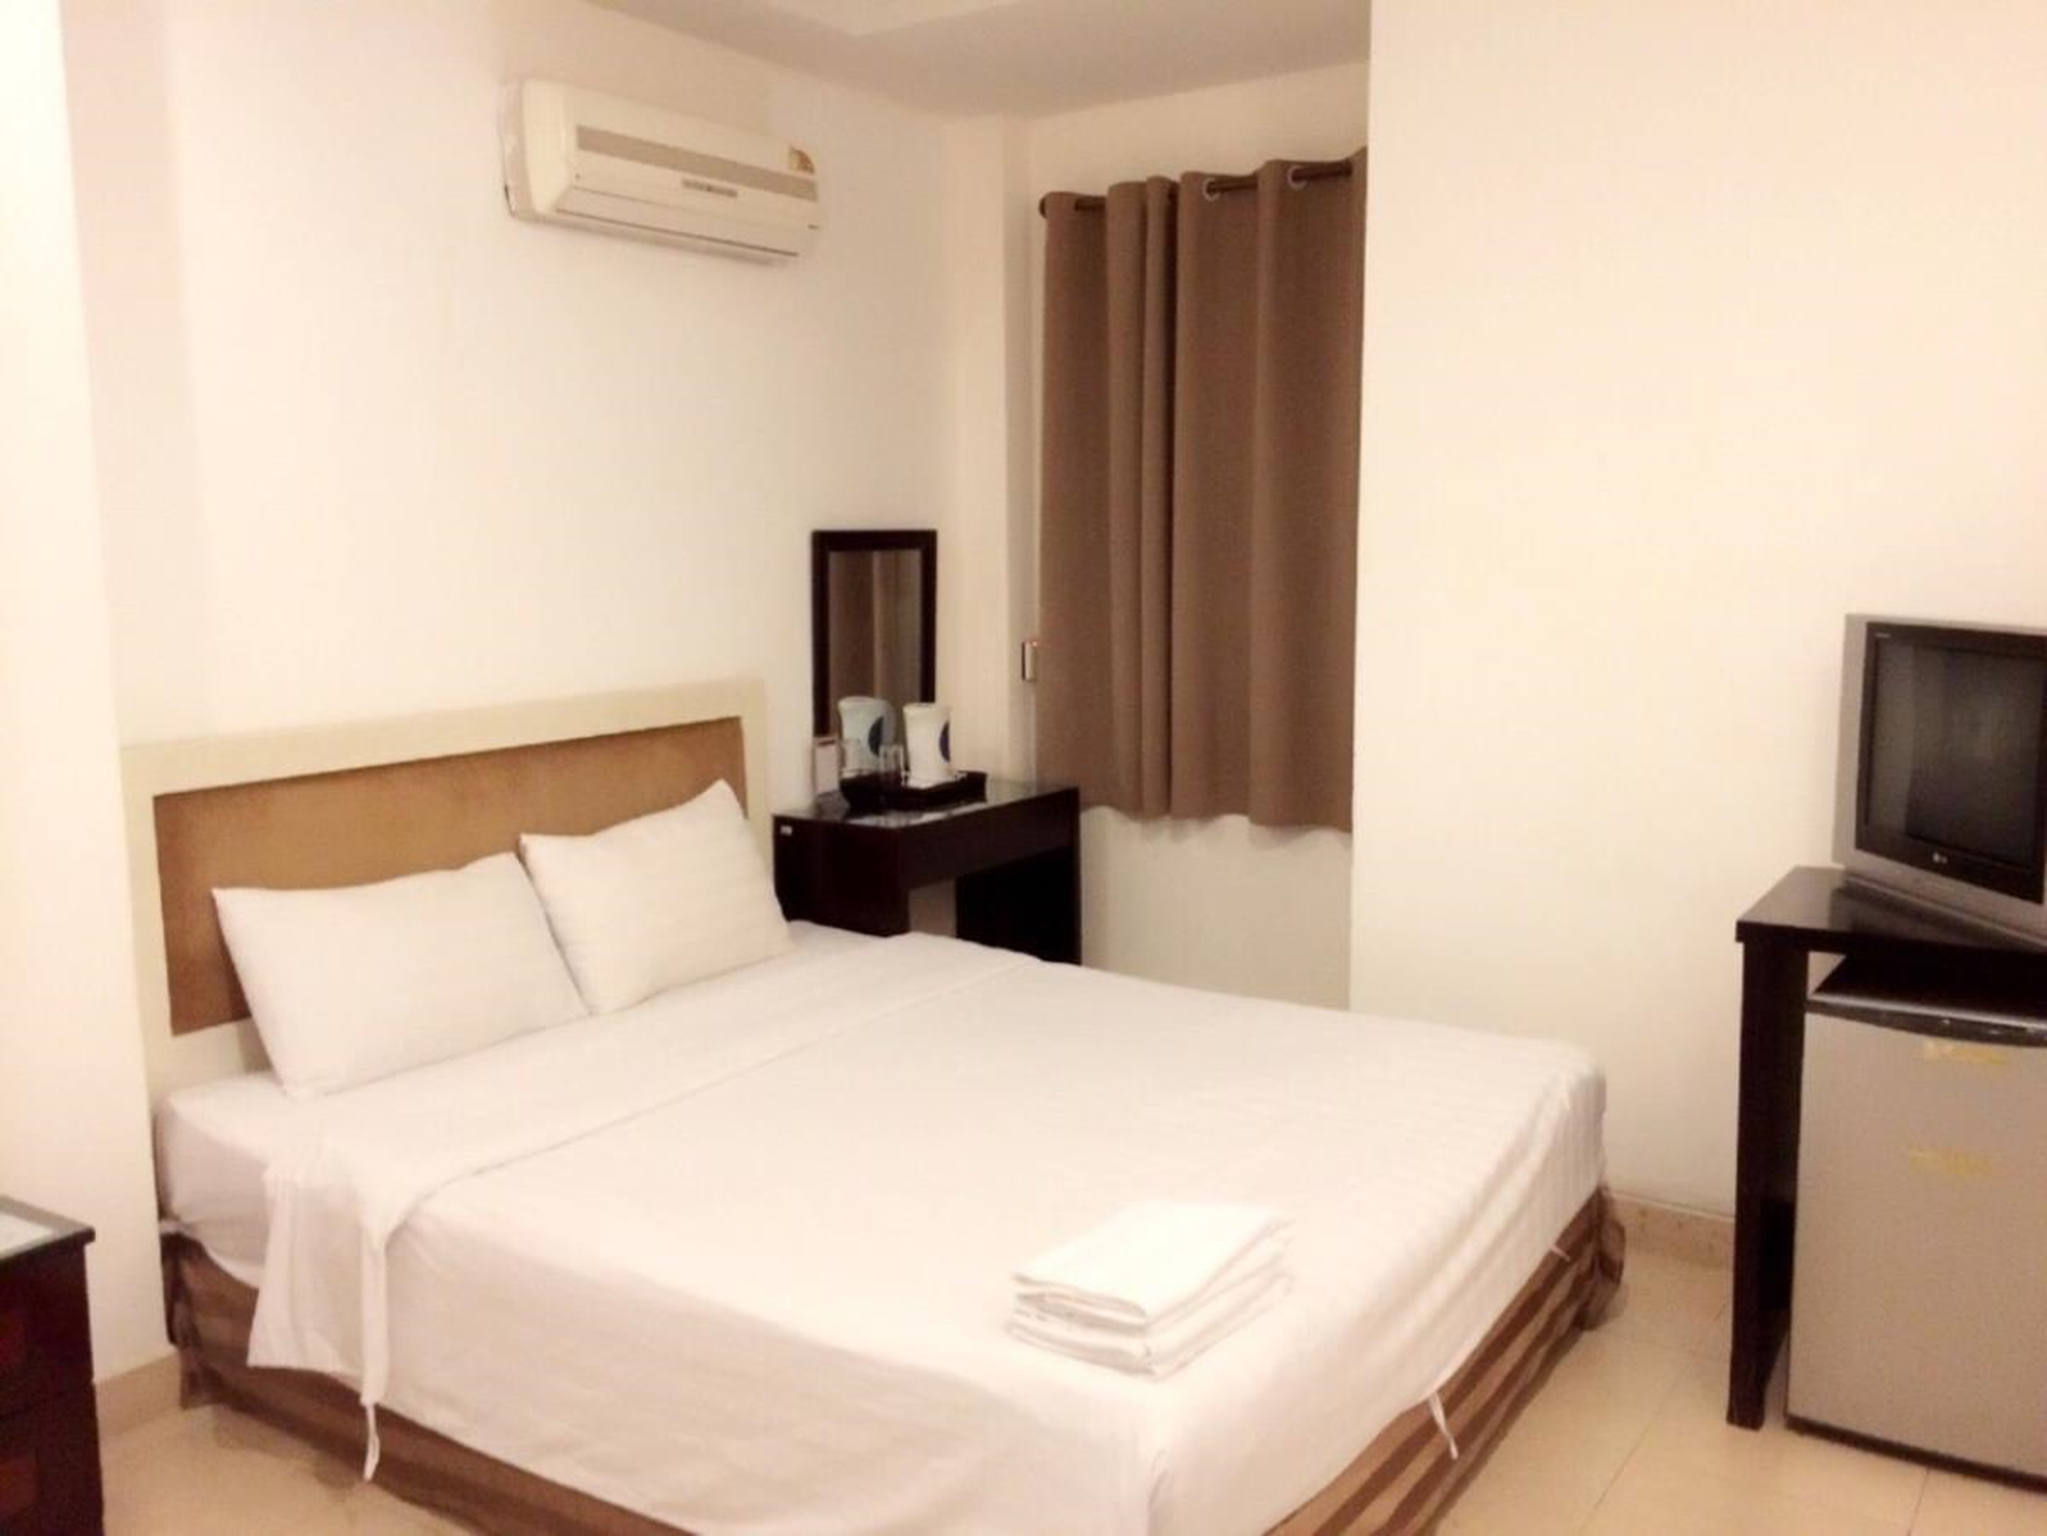 Zoom Room Bed Reviews Best Price On Saigon Zoom Hotel In Ho Chi Minh City Reviews